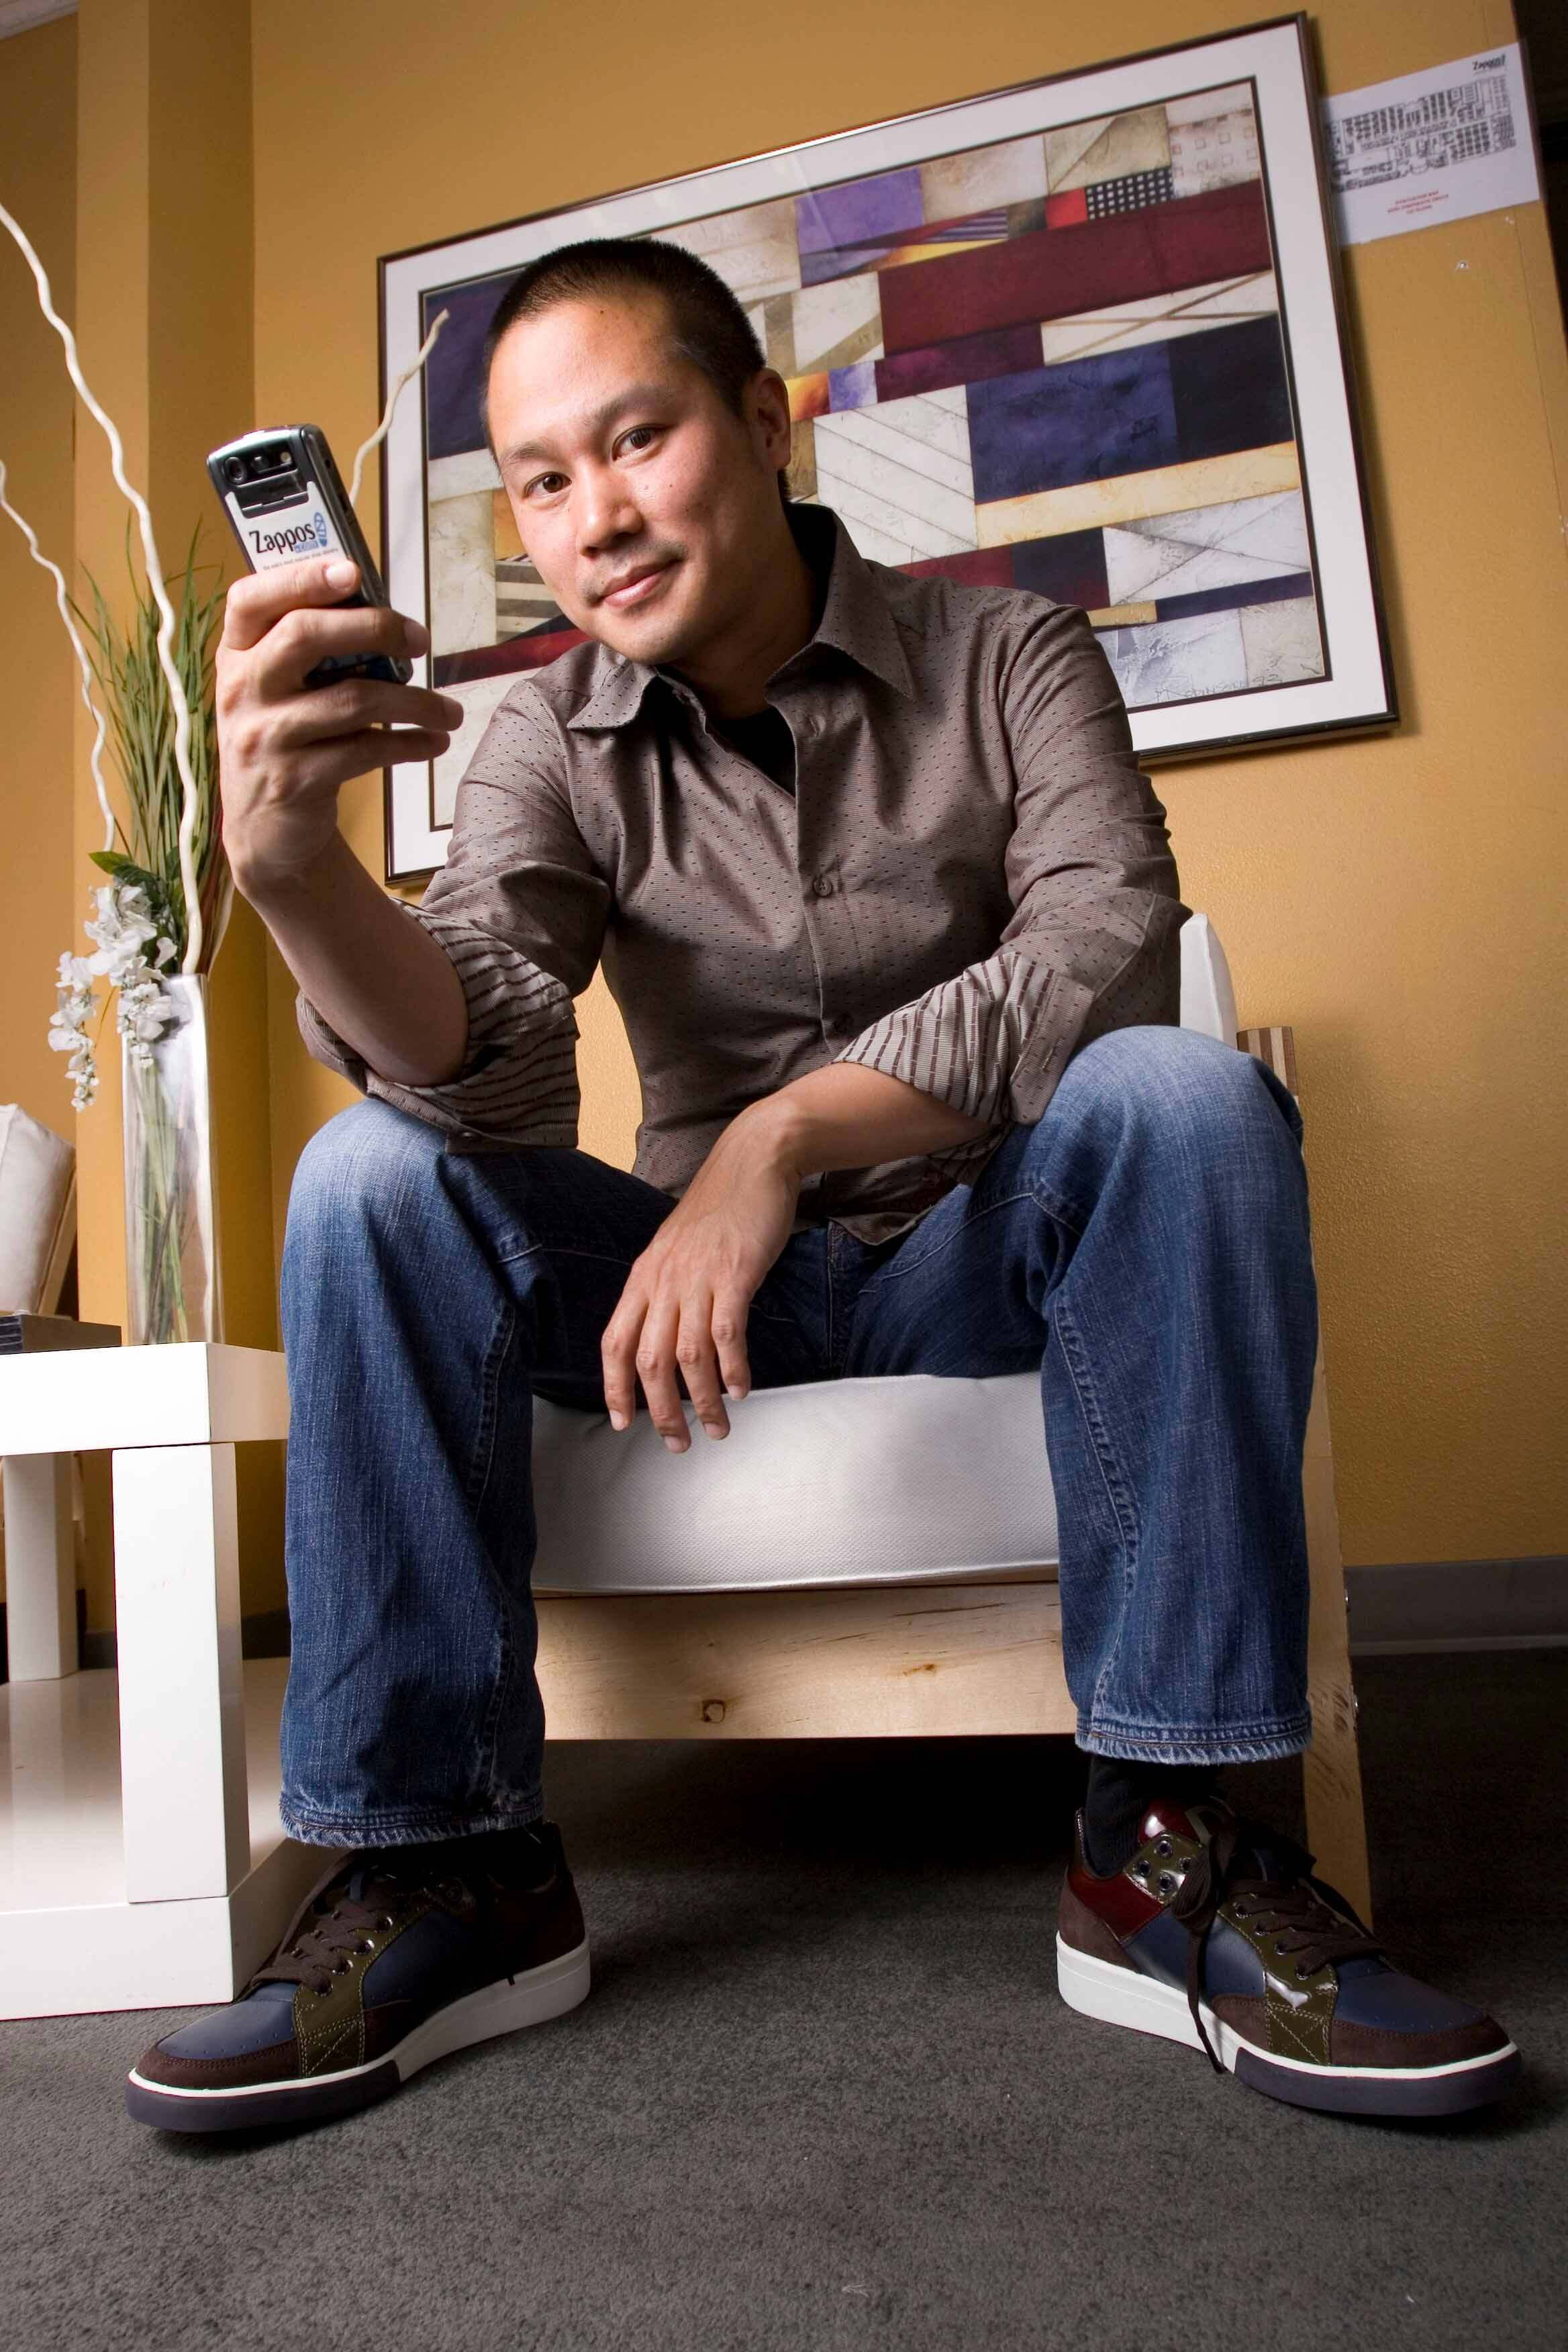 #10 Tony Hsieh | Extremely Rich People With Modest Lifestyles | Image Source: en.wikipedia.org